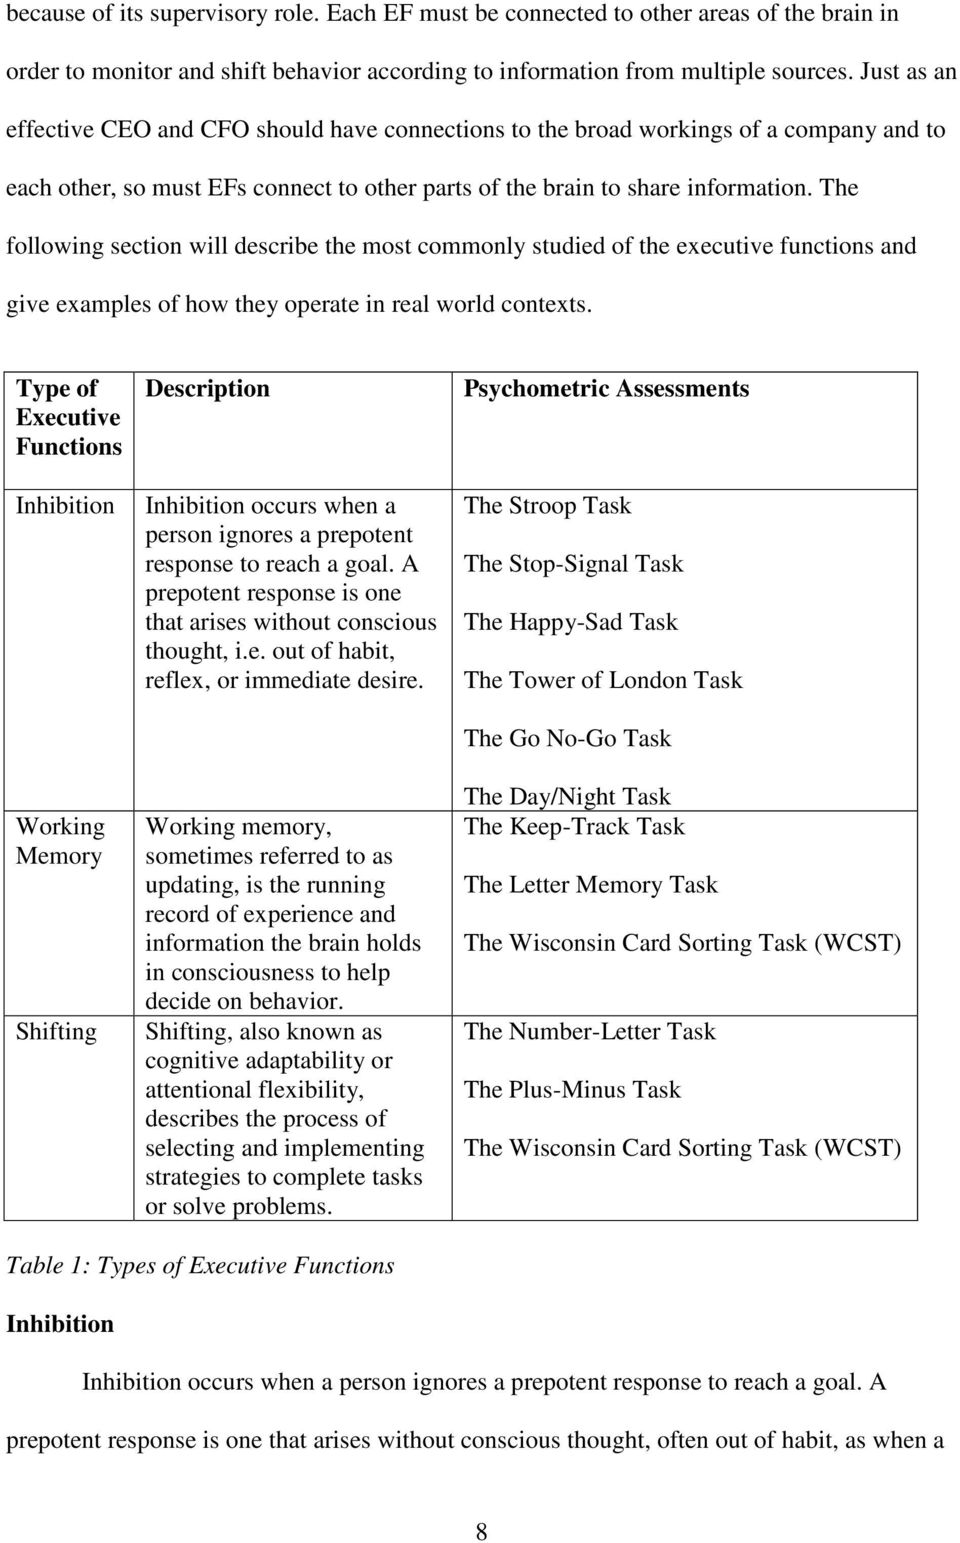 The following section will describe the most commonly studied of the executive functions and give examples of how they operate in real world contexts.